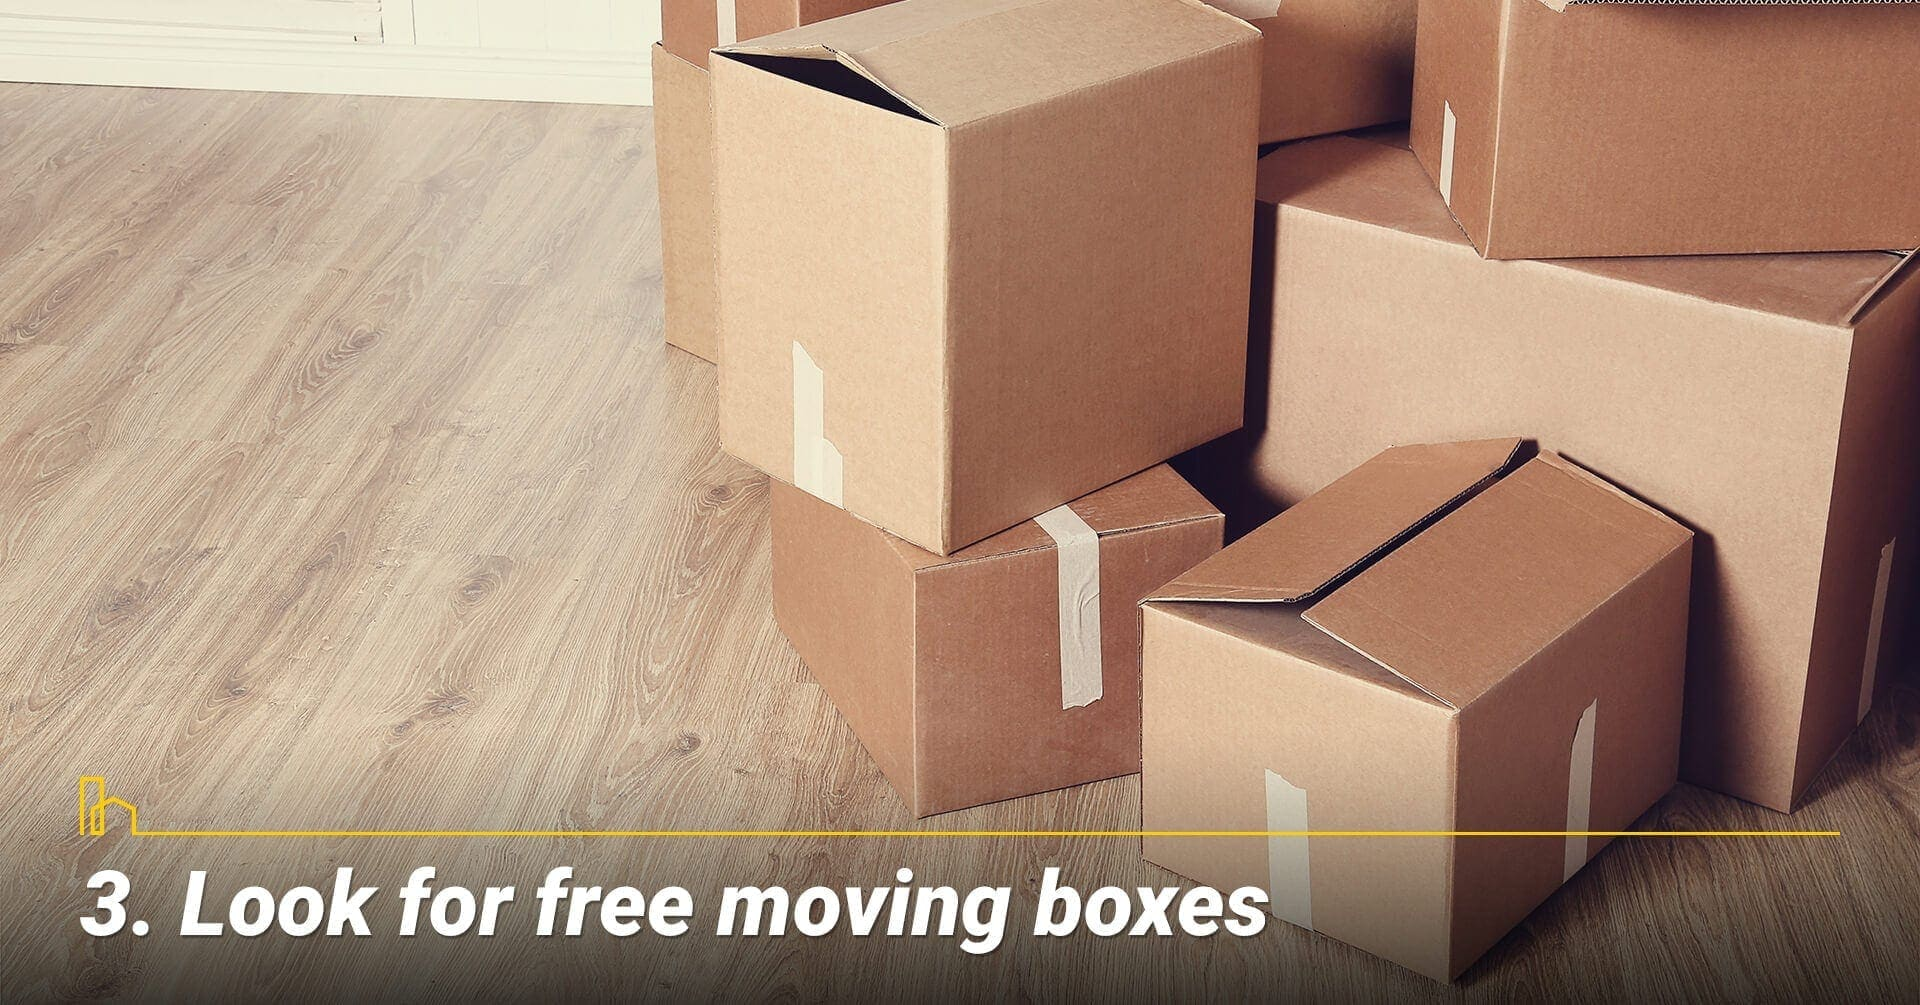 Look for free moving boxes